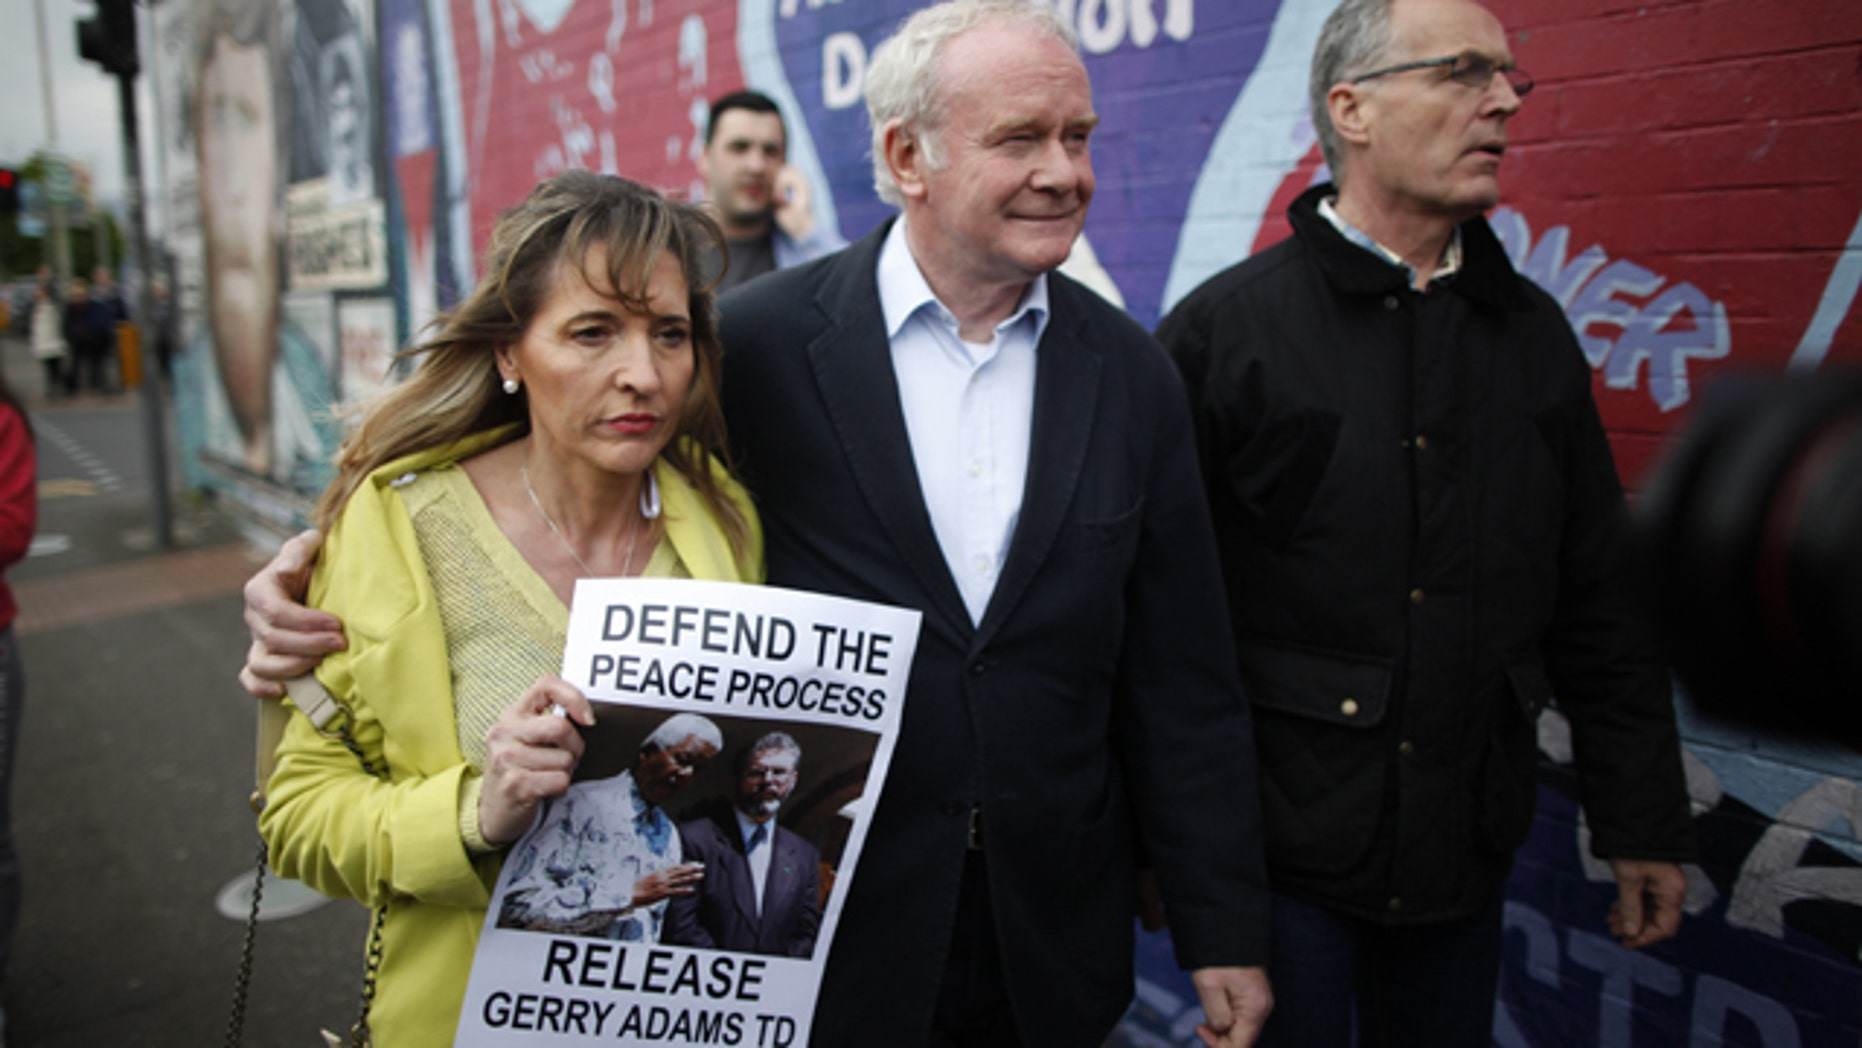 May 3, 2014: Sinn Fein's Martin McGuinness, center, with party members Bobby Storey, right, and Martina Anderson as they arrive for a protest rally on the Falls Road, West Belfast, Northern Ireland.